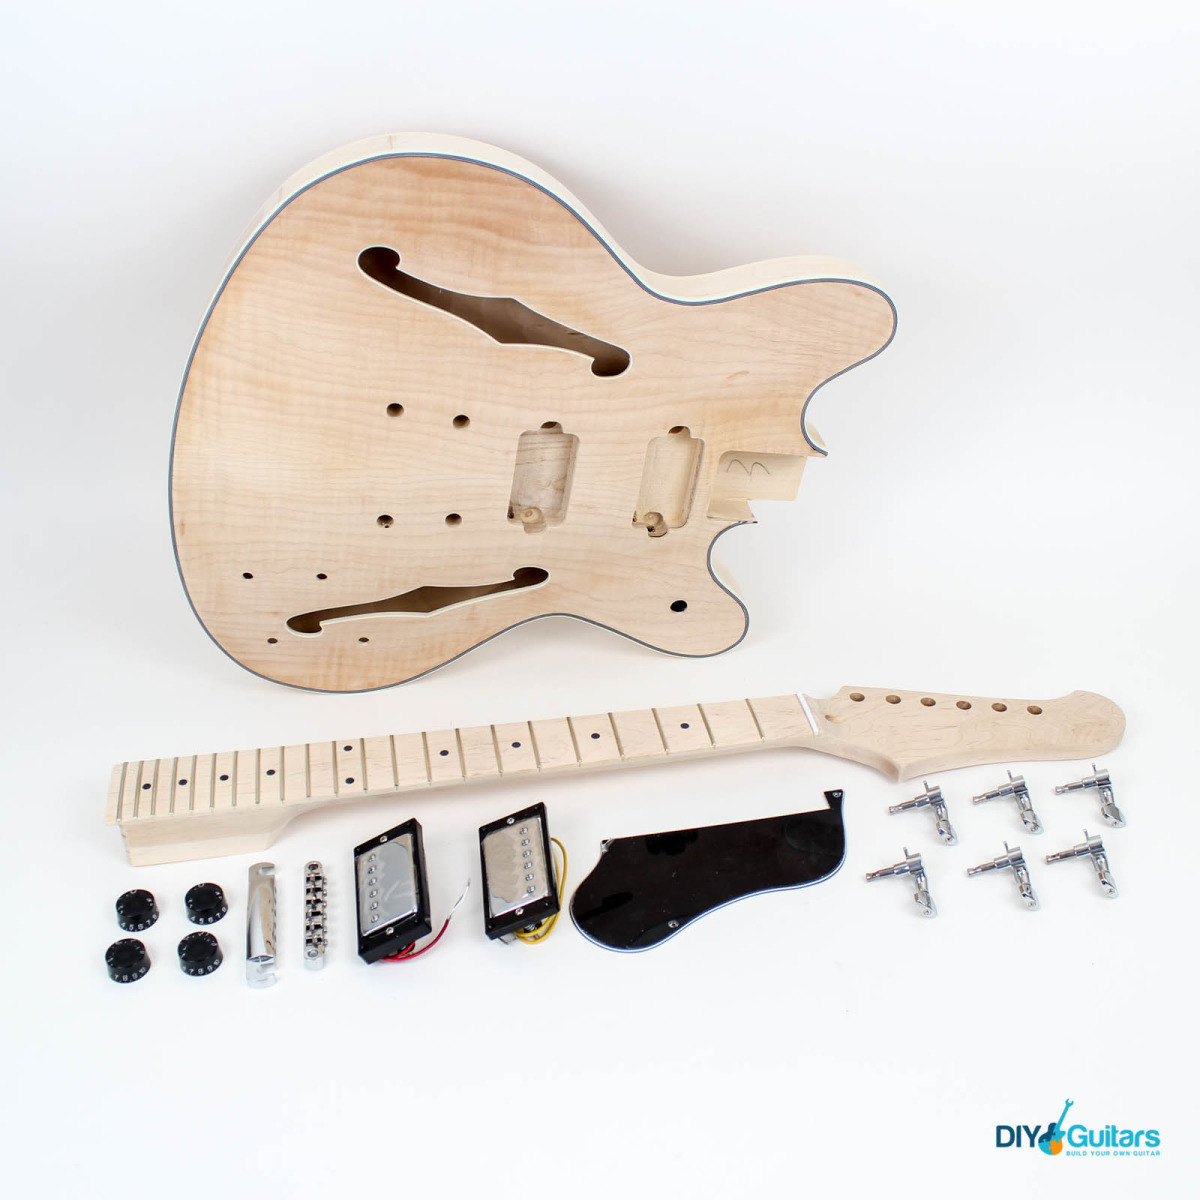 fender-starcaster-diy-electric-guitar-kit-1-1200x1200.jpg